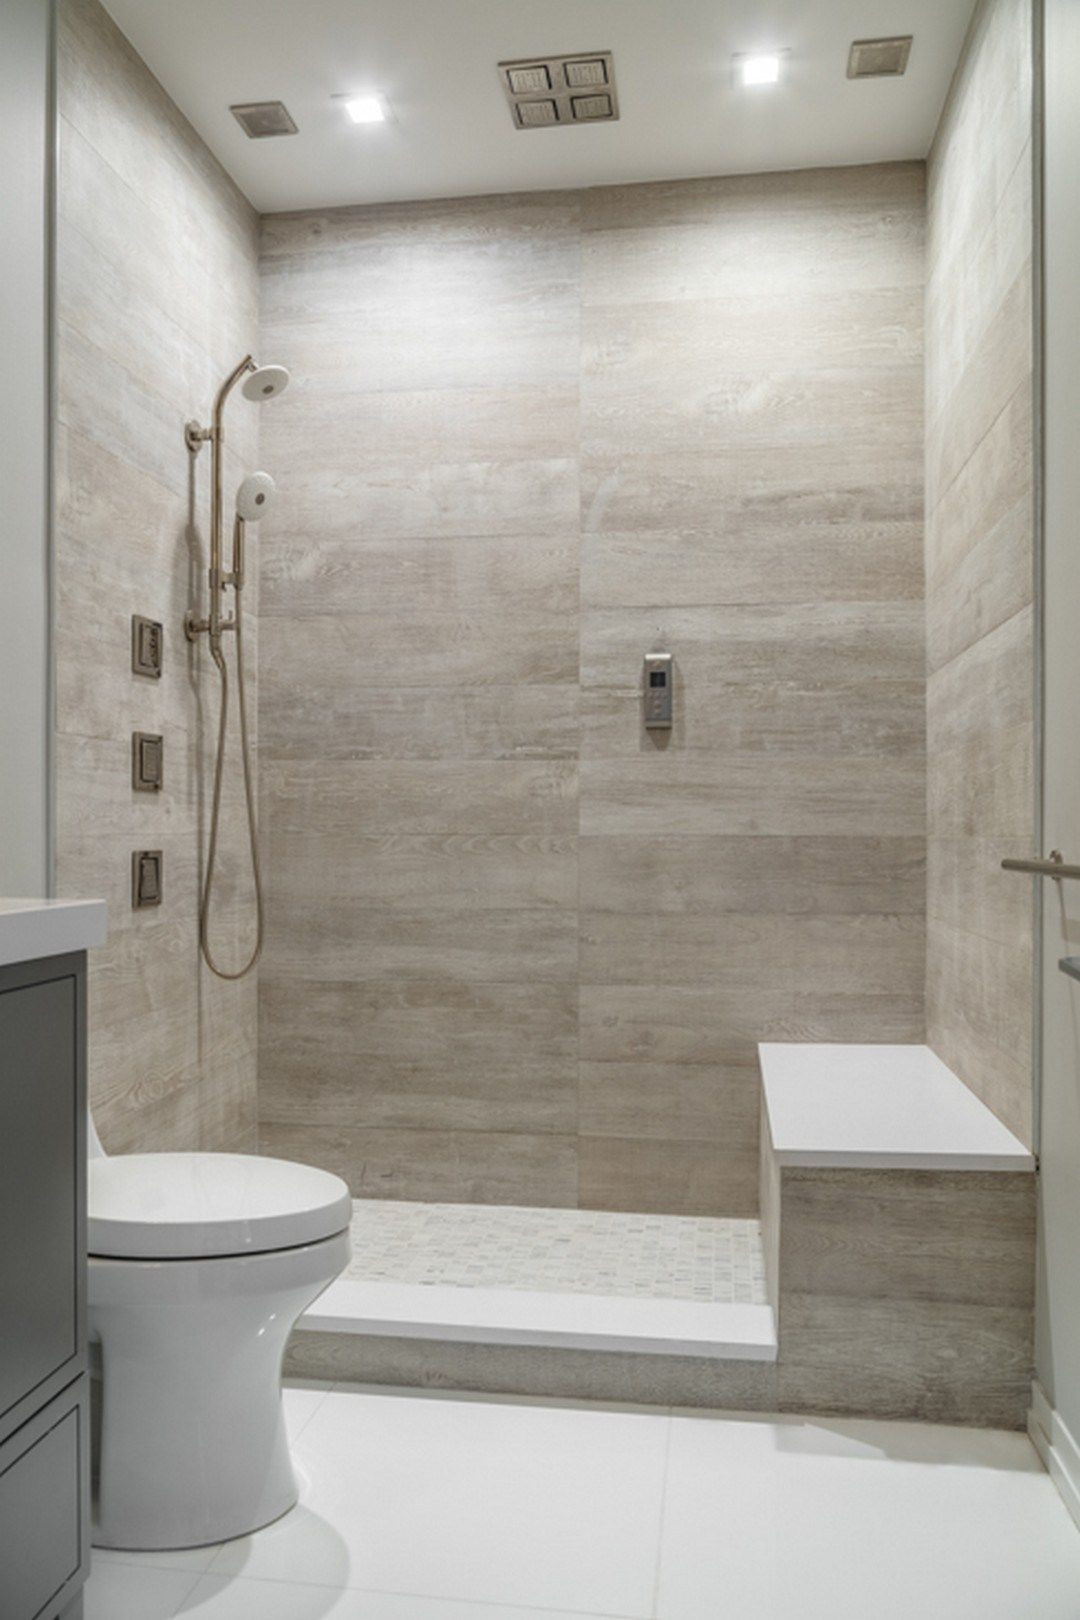 Best ideas about Bathroom Tiles Design . Save or Pin 15 Luxury Bathroom Tile Patterns Ideas Now.